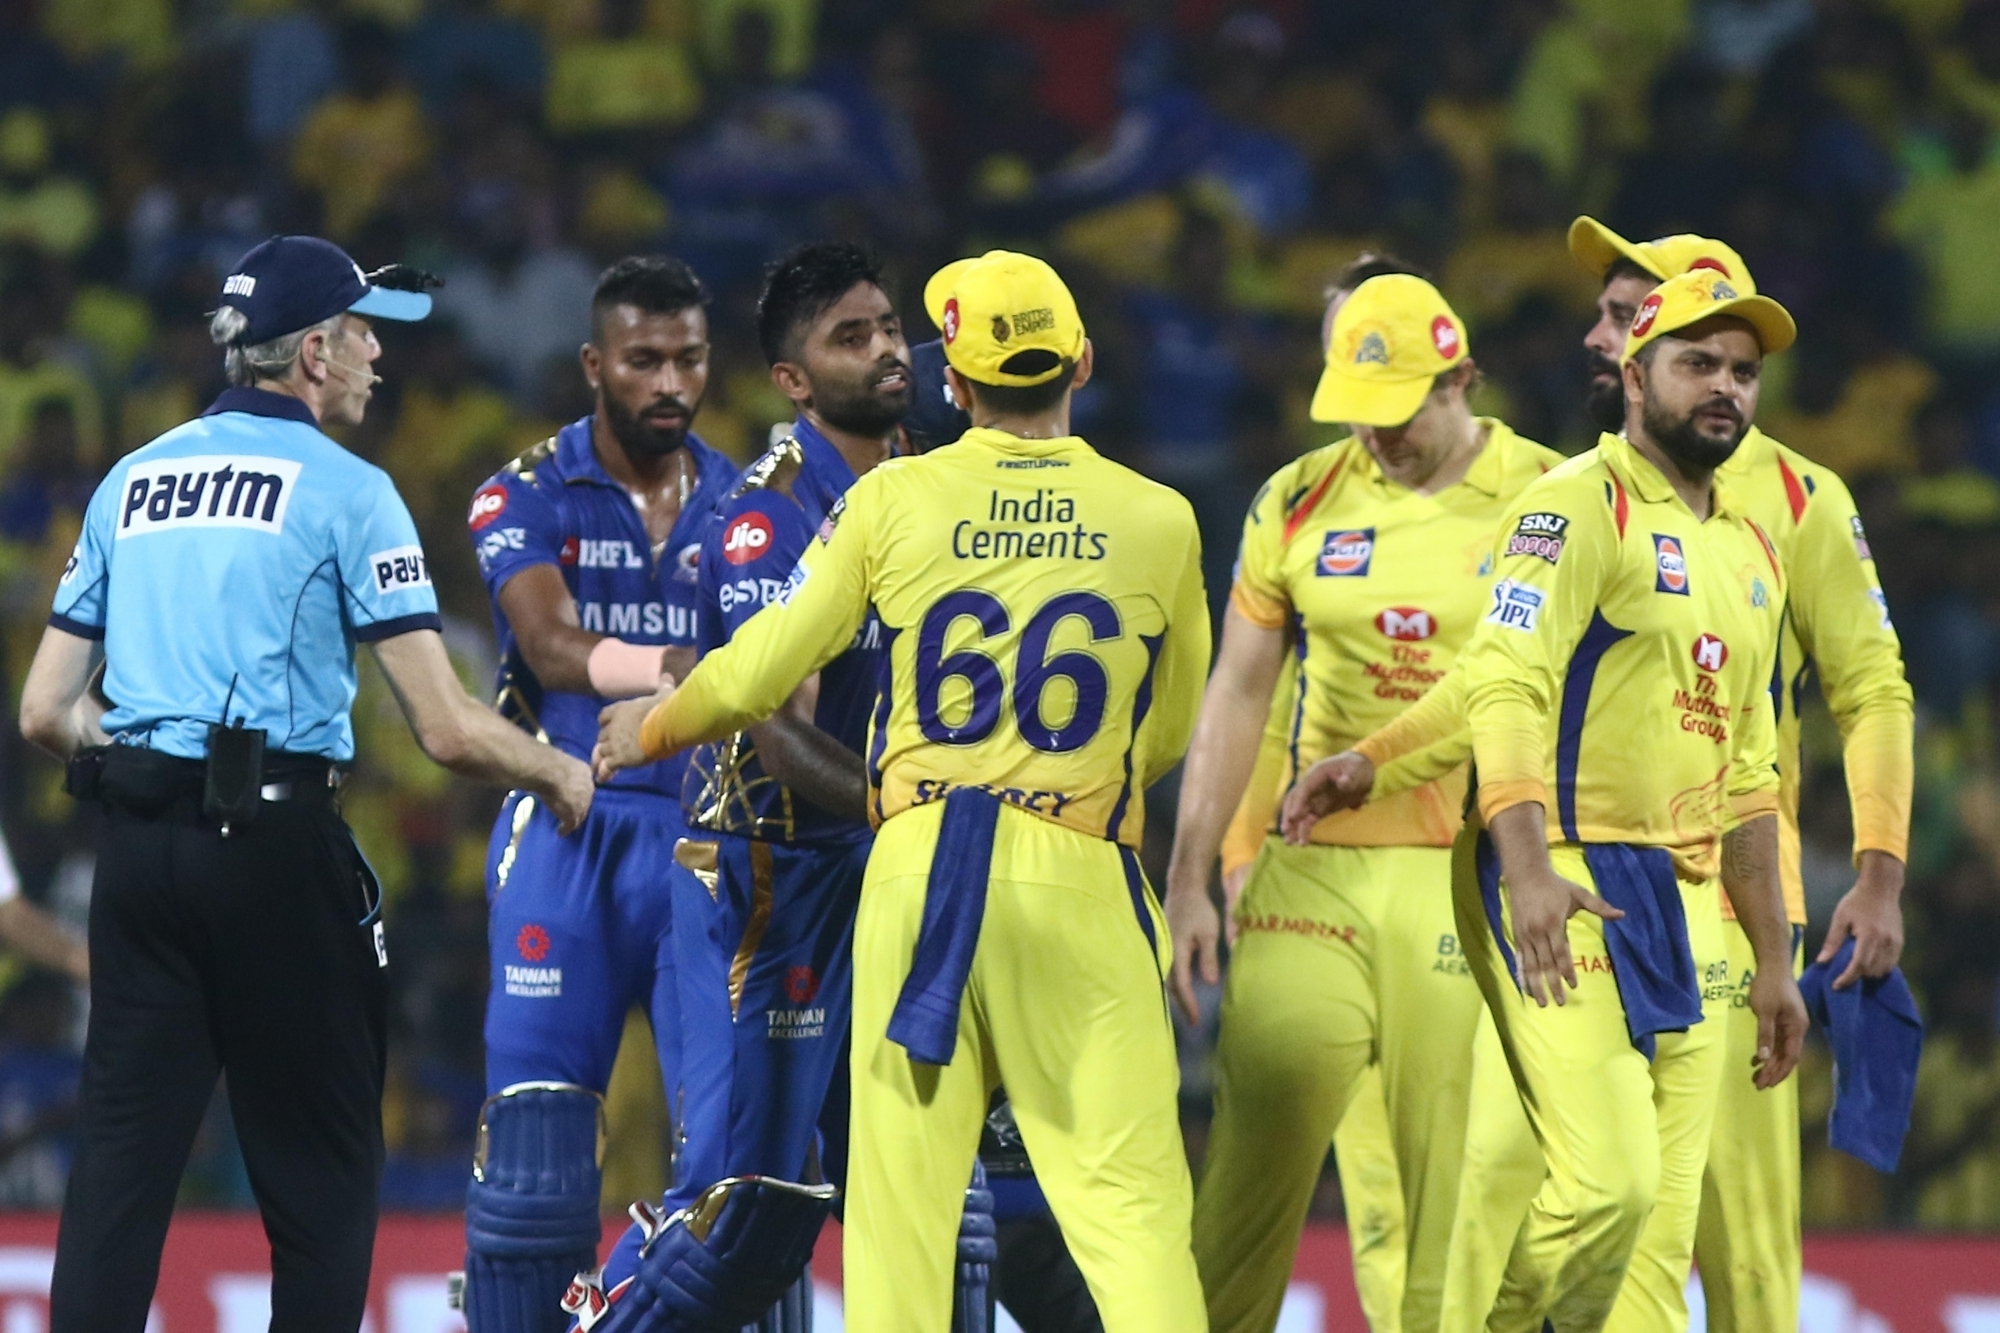 IPL 2020 remains postponed due to COVID-19 pandemic | Getty